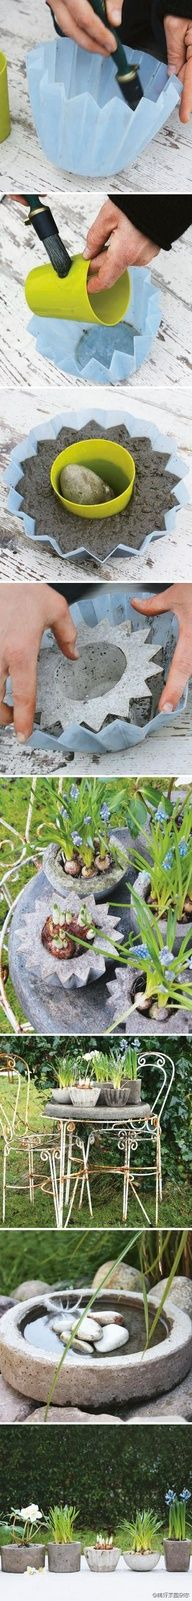 Concrete casting by joybx: something to try this summer with printed forms/molds #DIY #Flower_Pots  DIY - Alternatives to the Infinite Marketplace